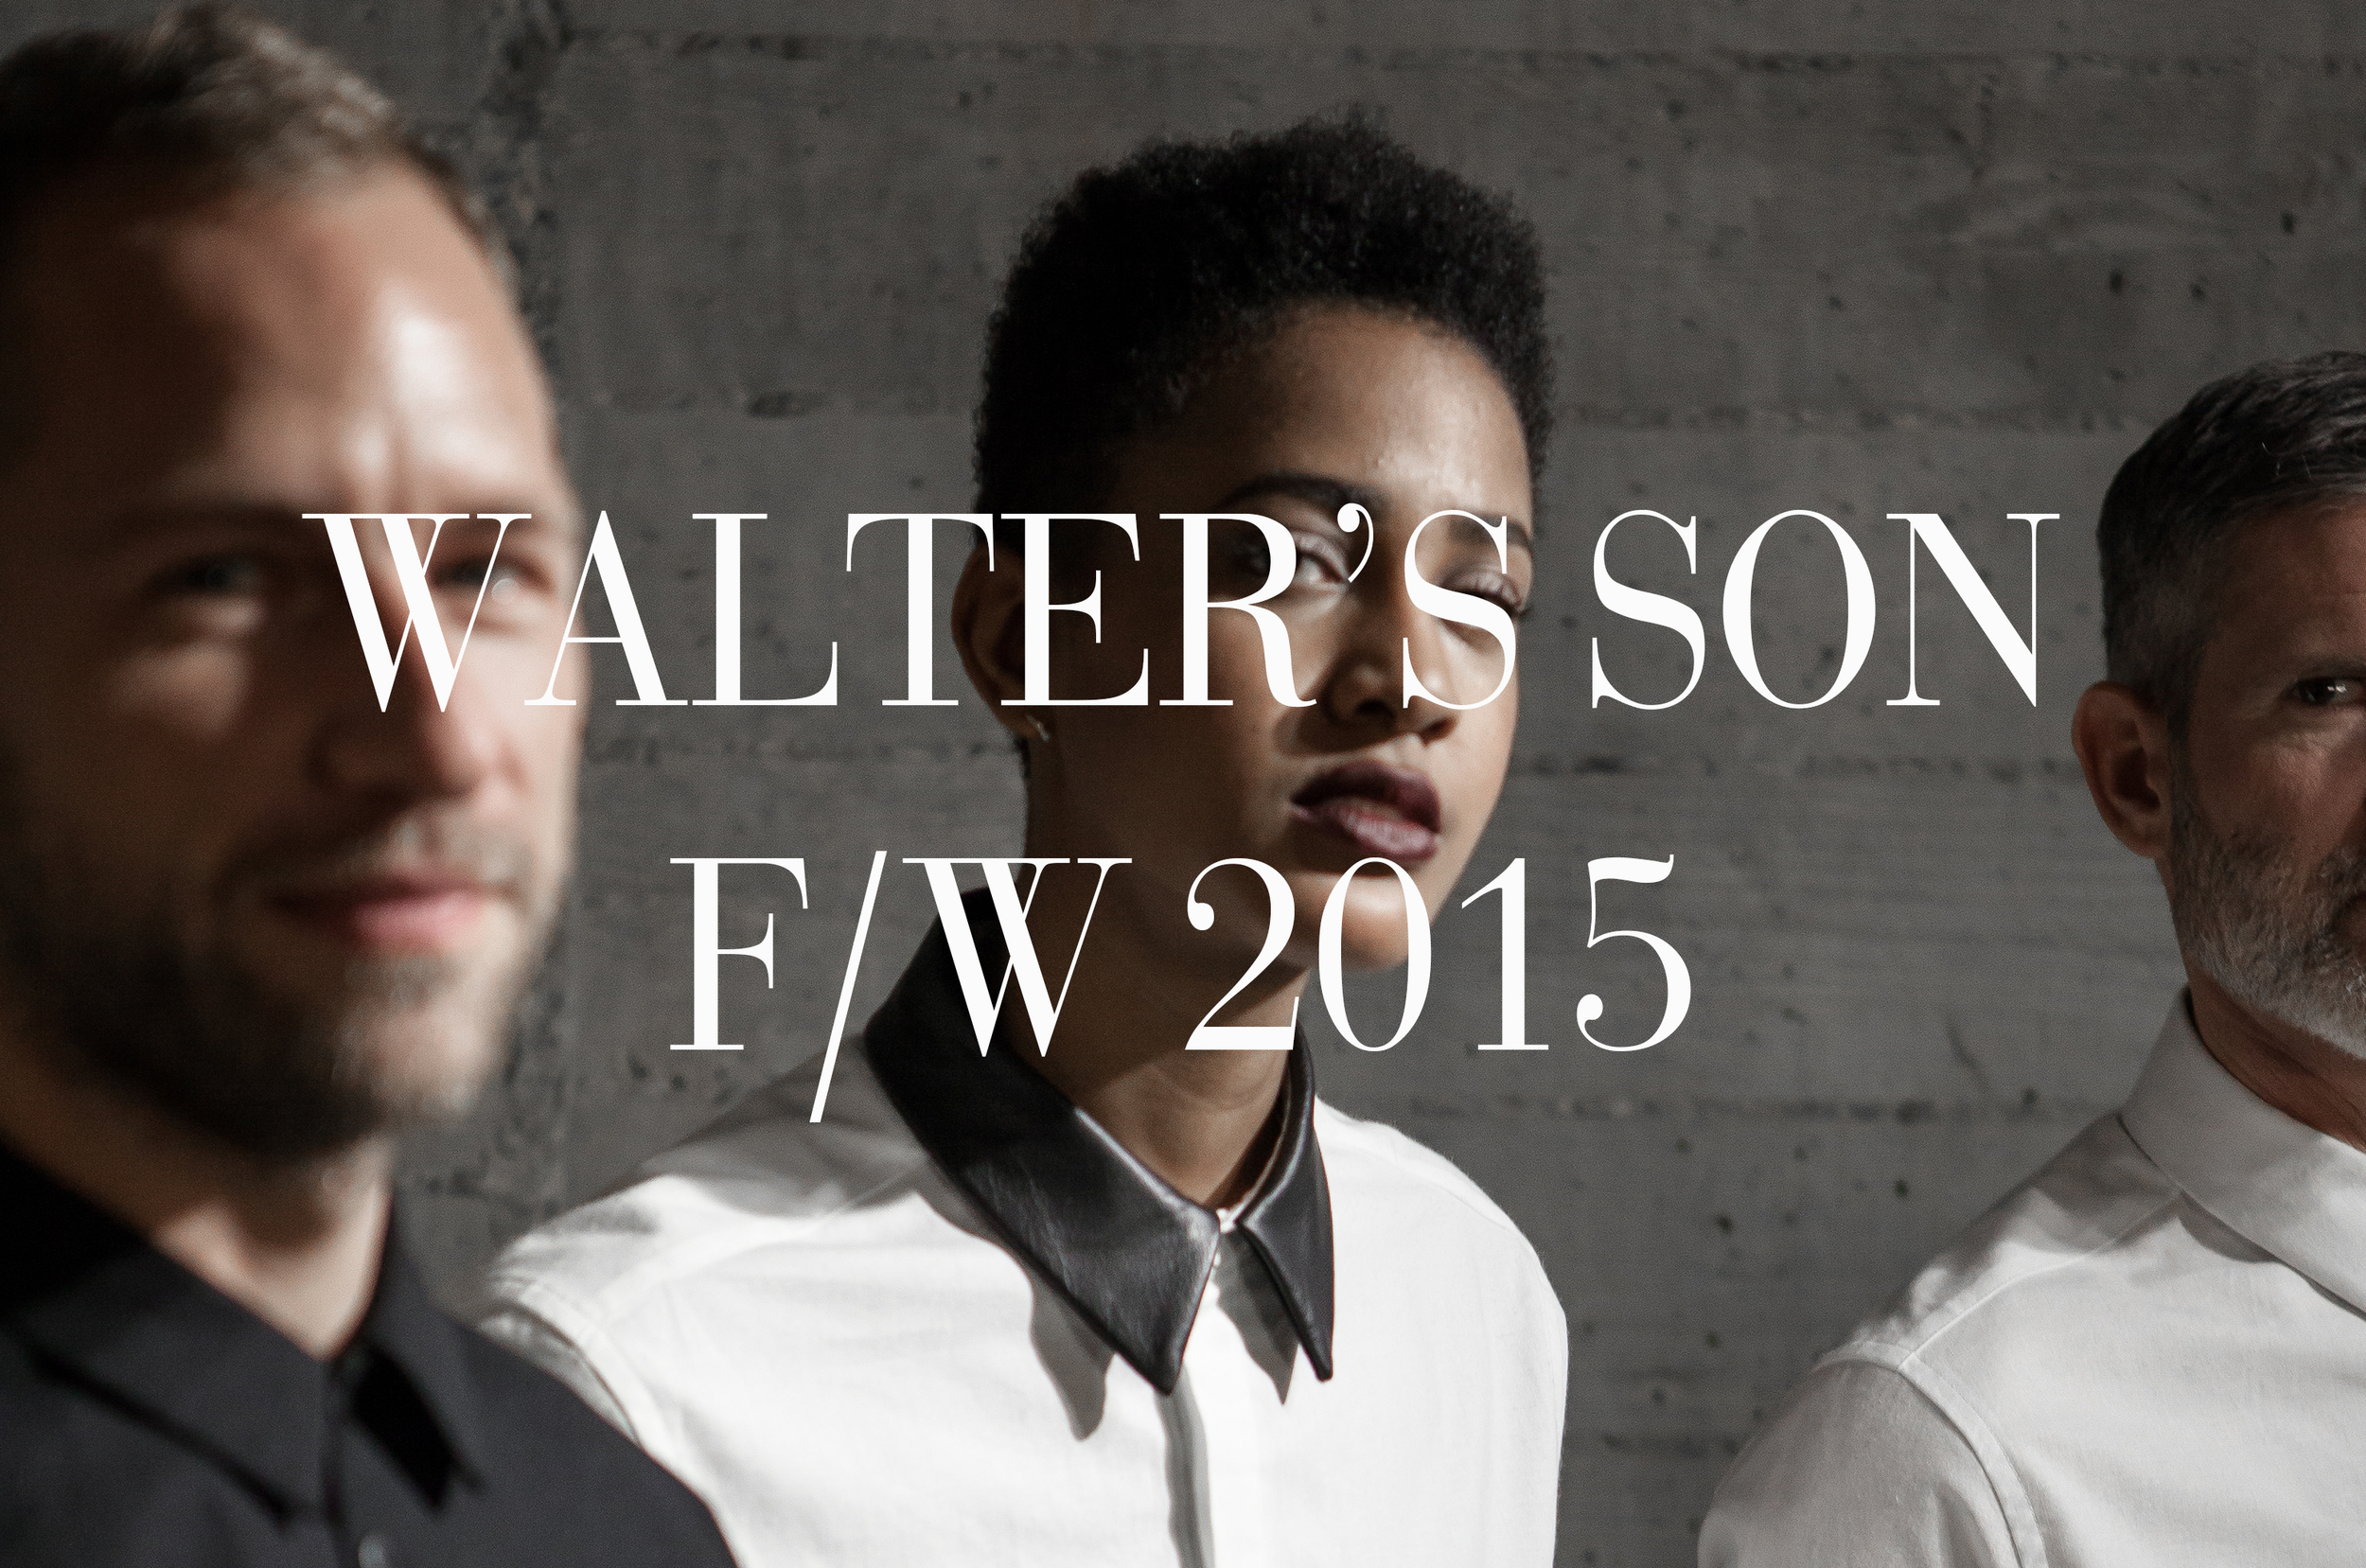 FASHION Sourcing Japanese cottons and Quebec leather, Walter's Son showcased itsF/W 2015 Shirting Collection at Litchfield on November 13th. We were invited to the media presentation, where we got handsy withdesigner Kyle Parent's chemises.